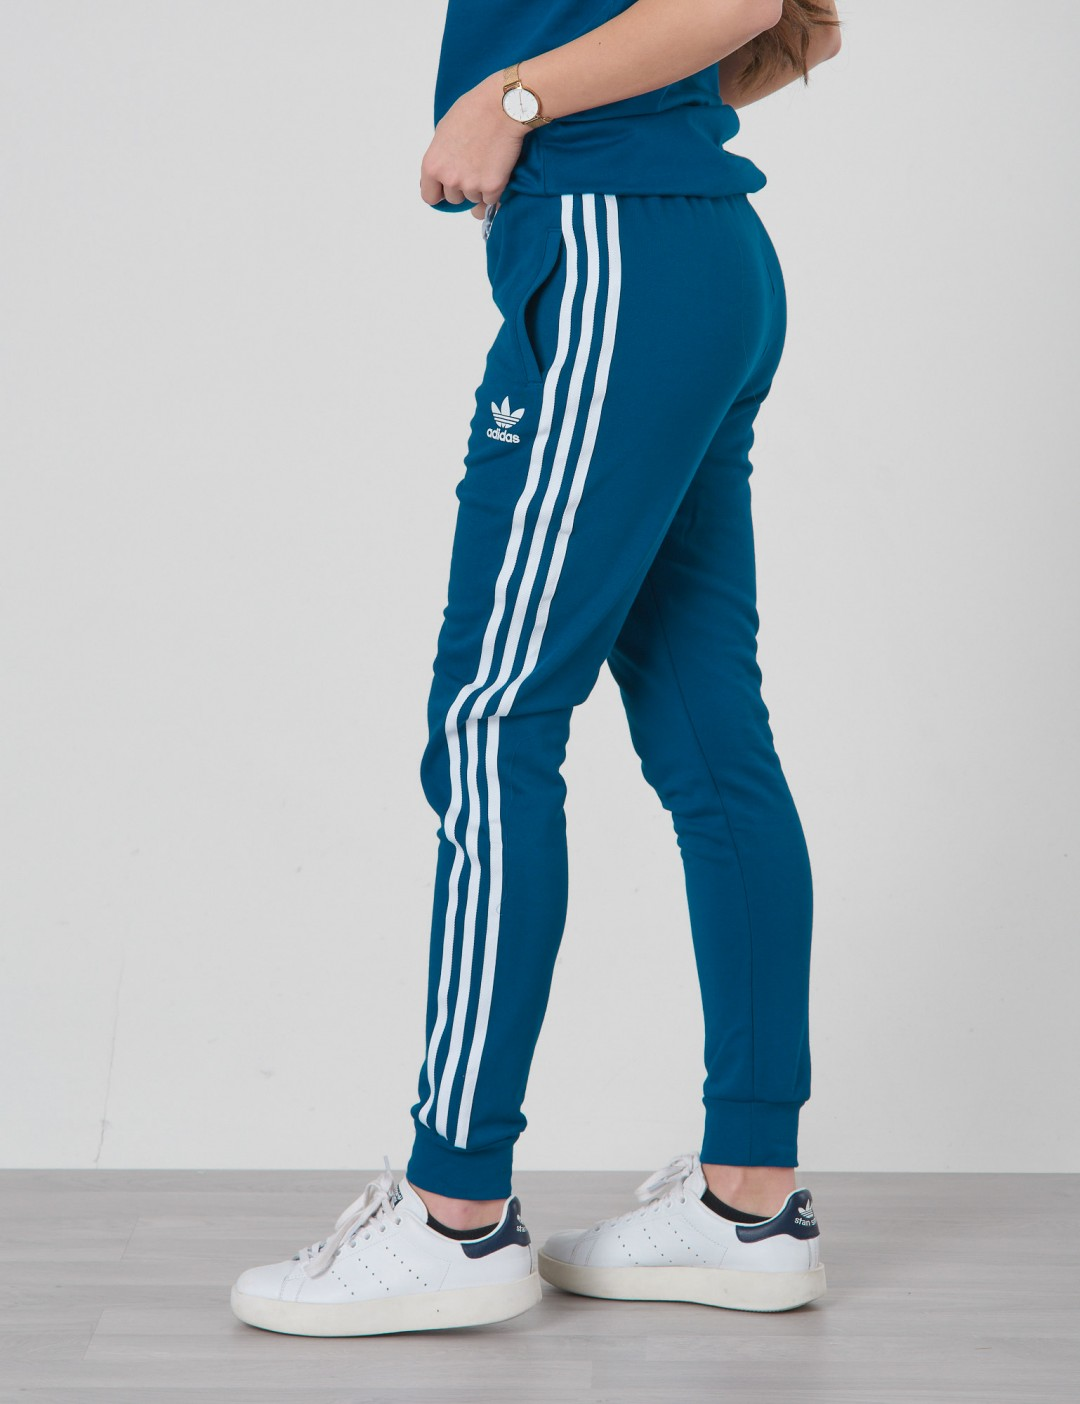 new products 881a2 6873d Adidas Originals - TREFOIL PANTS Adidas Originals - TREFOIL PANTS ...